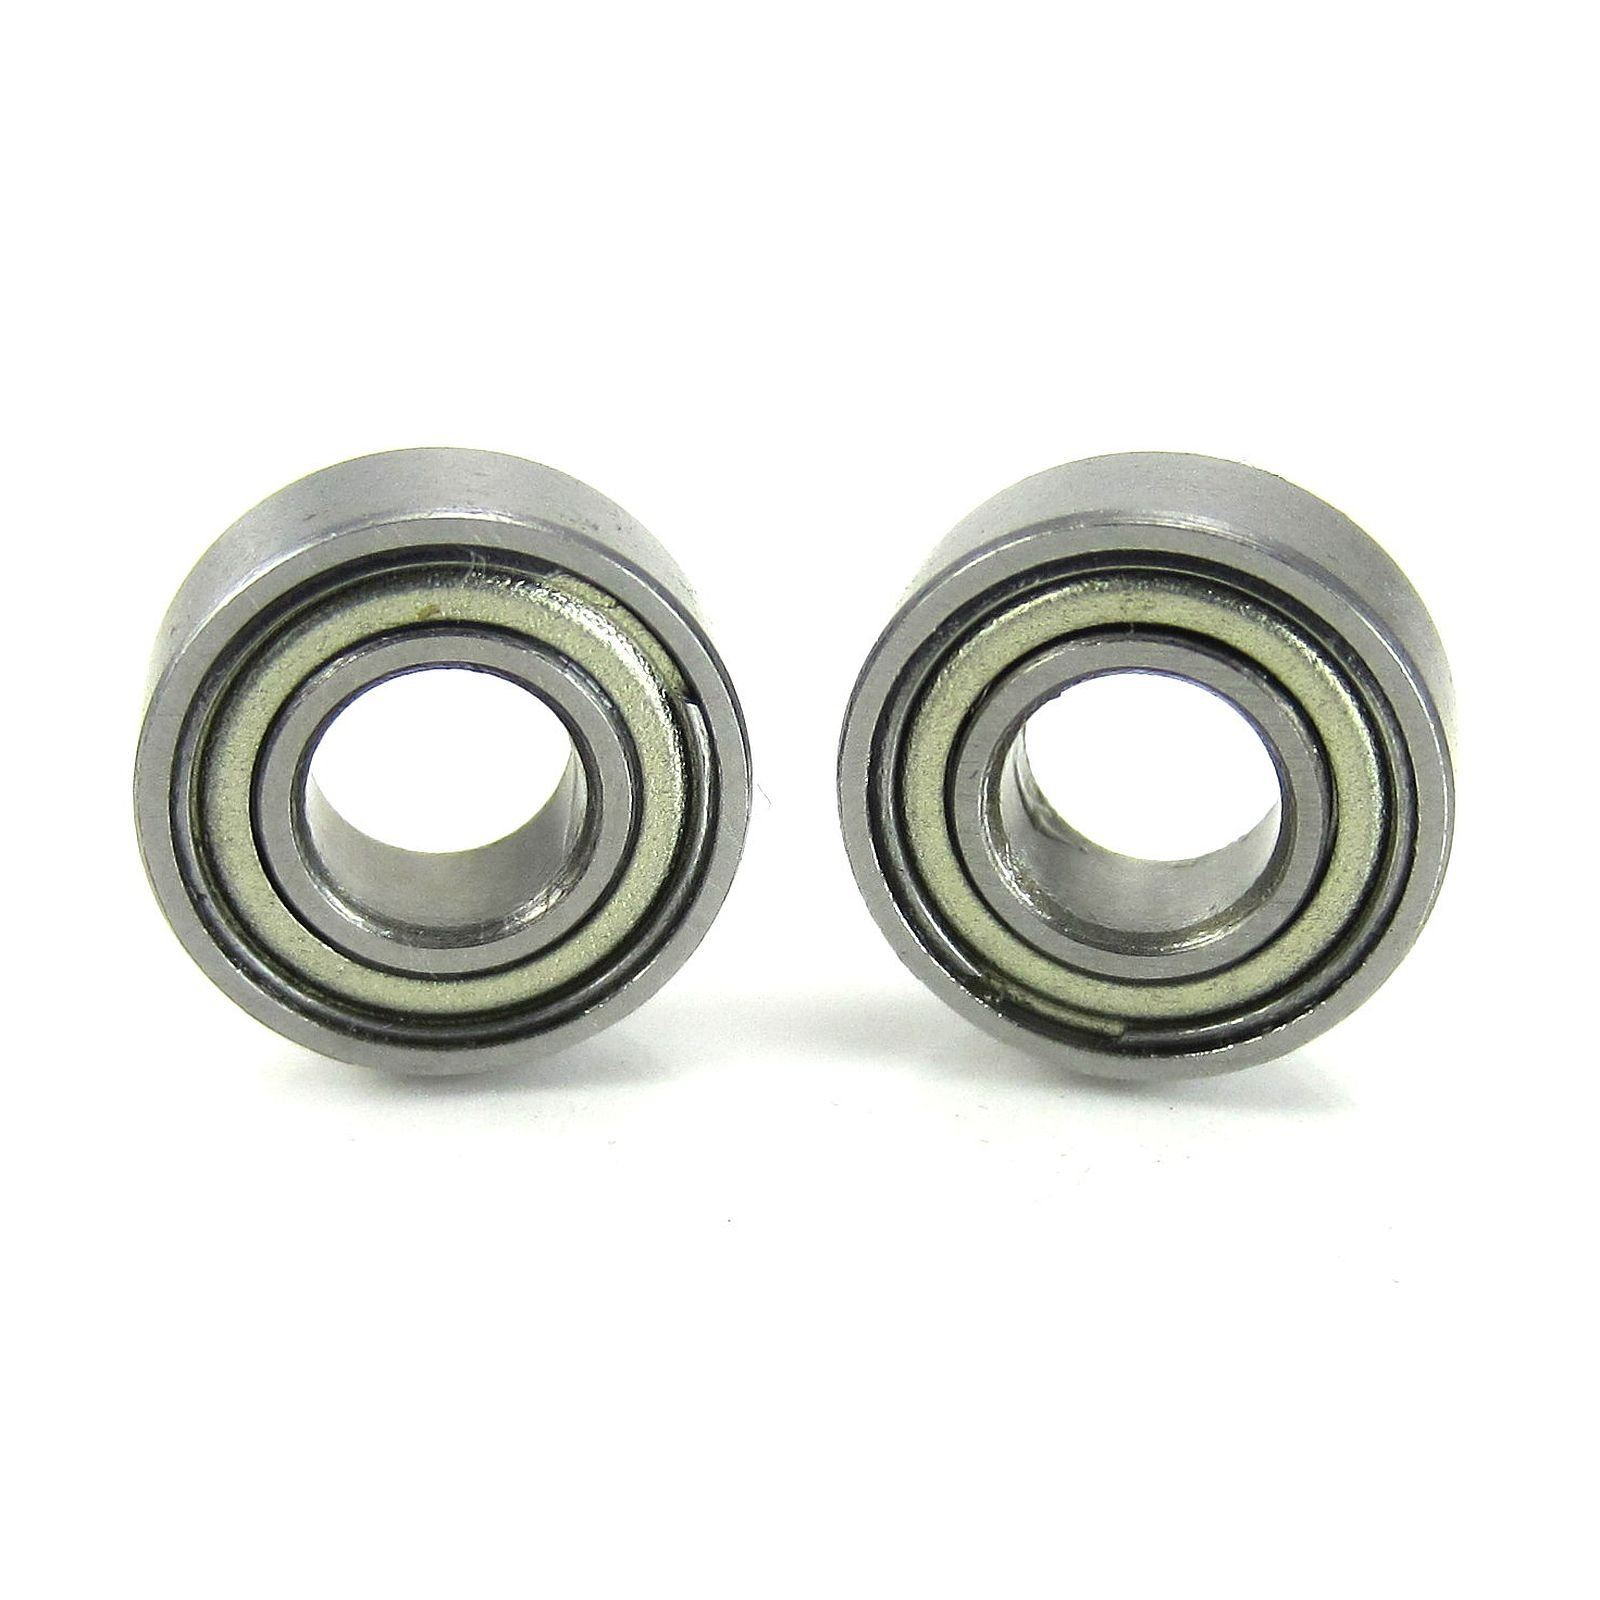 TRB RC 5x11x4mm Precision Clutch Ball Bearings Metal Shields (2) - trb-rc-bearings